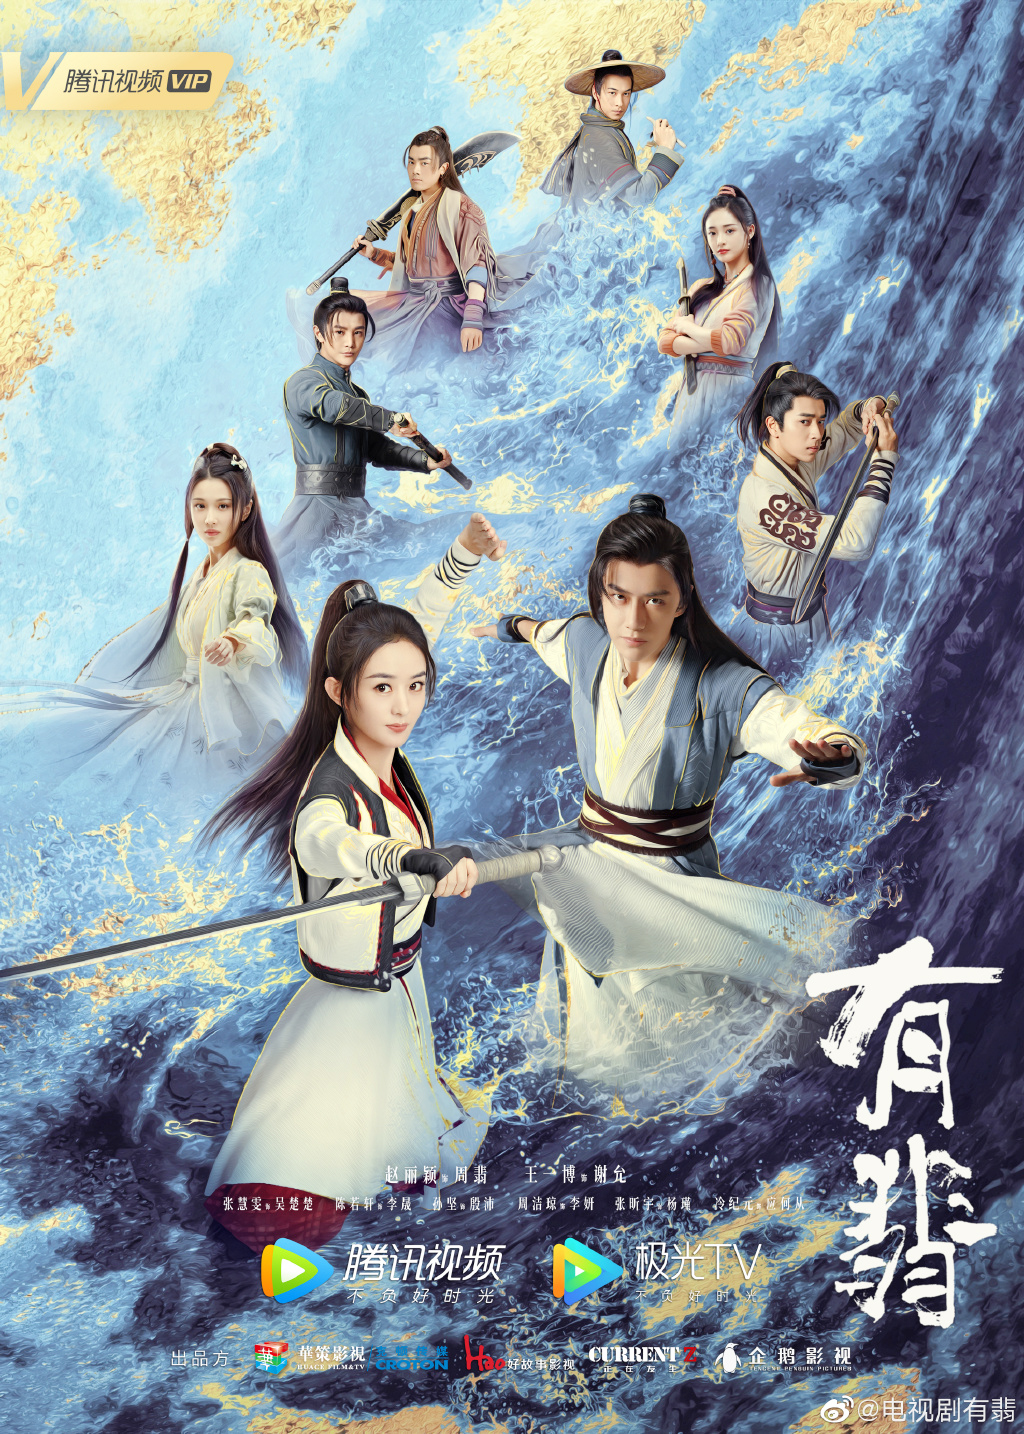 Legend of Fei 2020 [Eng Sub] ep 21 有翡 | Chinese Drama | China Huace TV | China Zone | 剧乐部 | 腾讯视频 | iQIYI | 爱奇艺 | Tencent Video Best